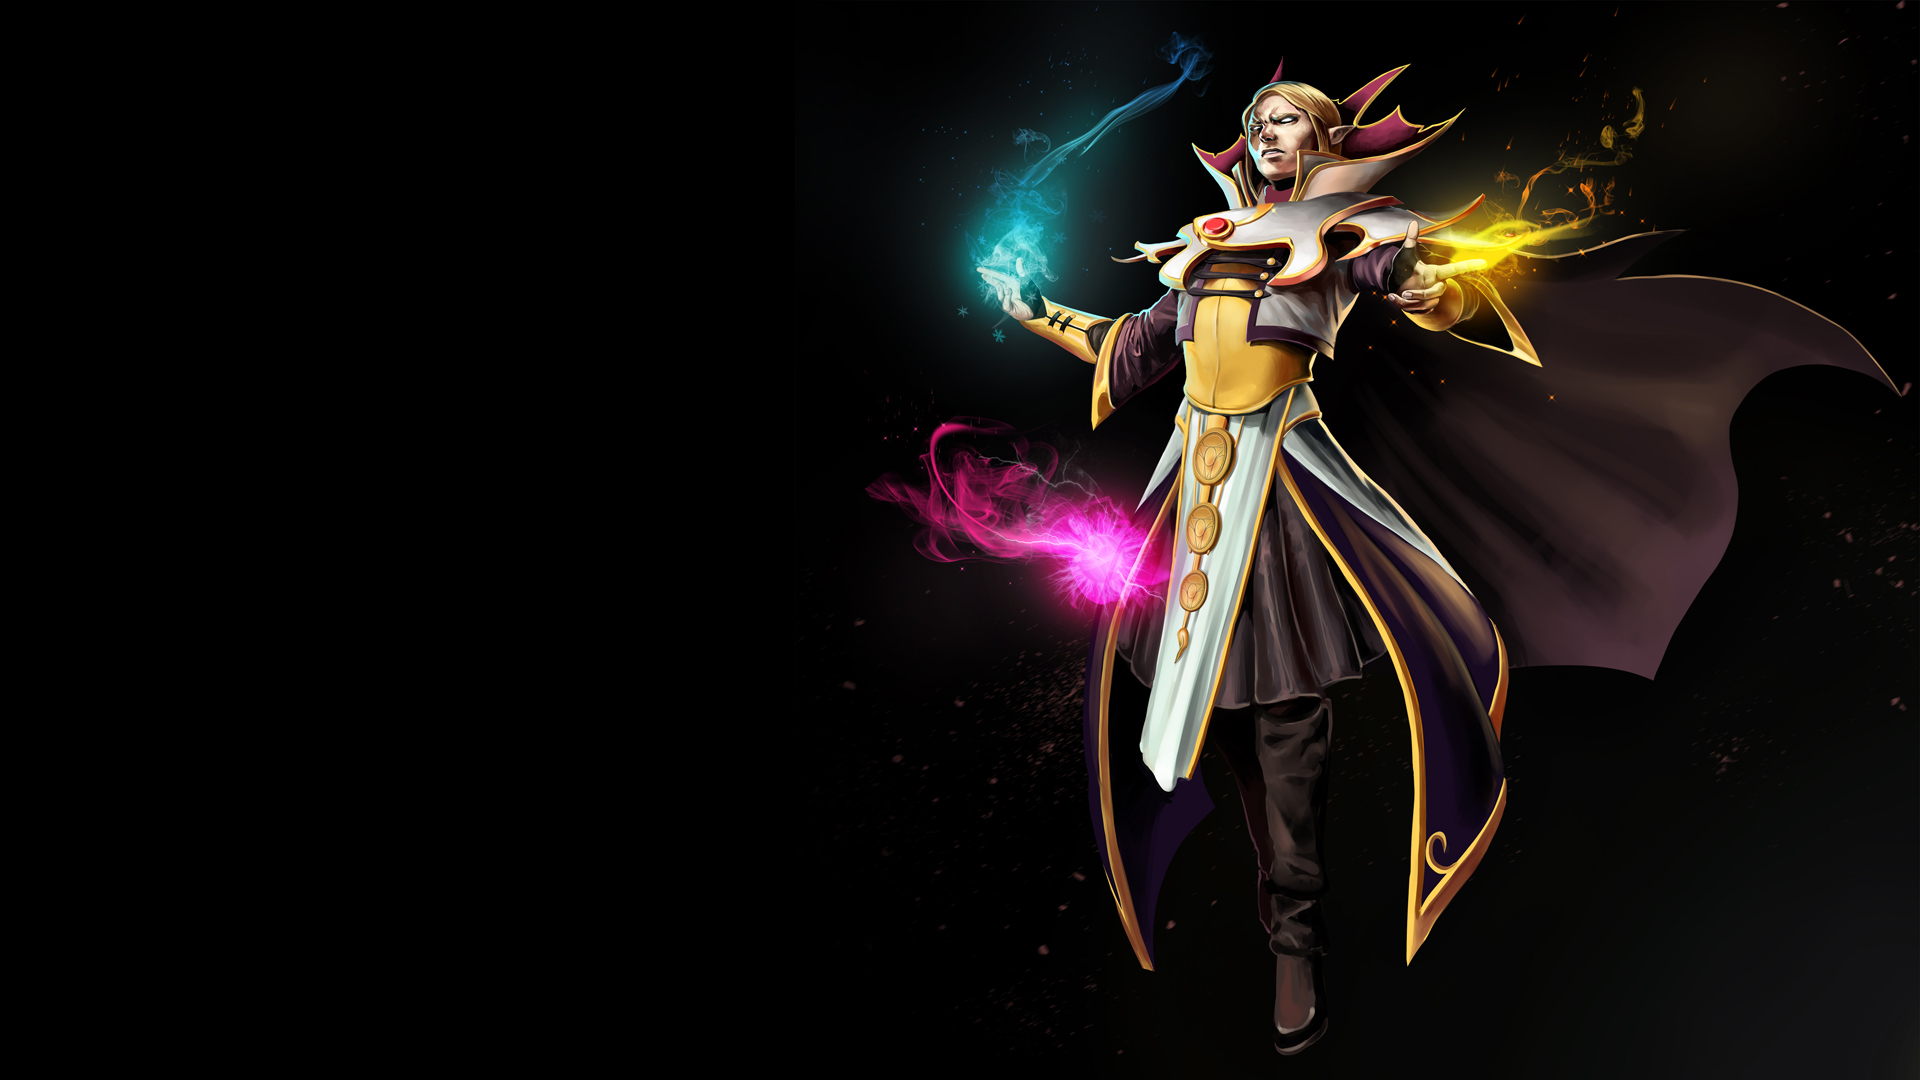 dota 2 game hd wallpaper image picture photo defense of the ancient 2 1920x1080